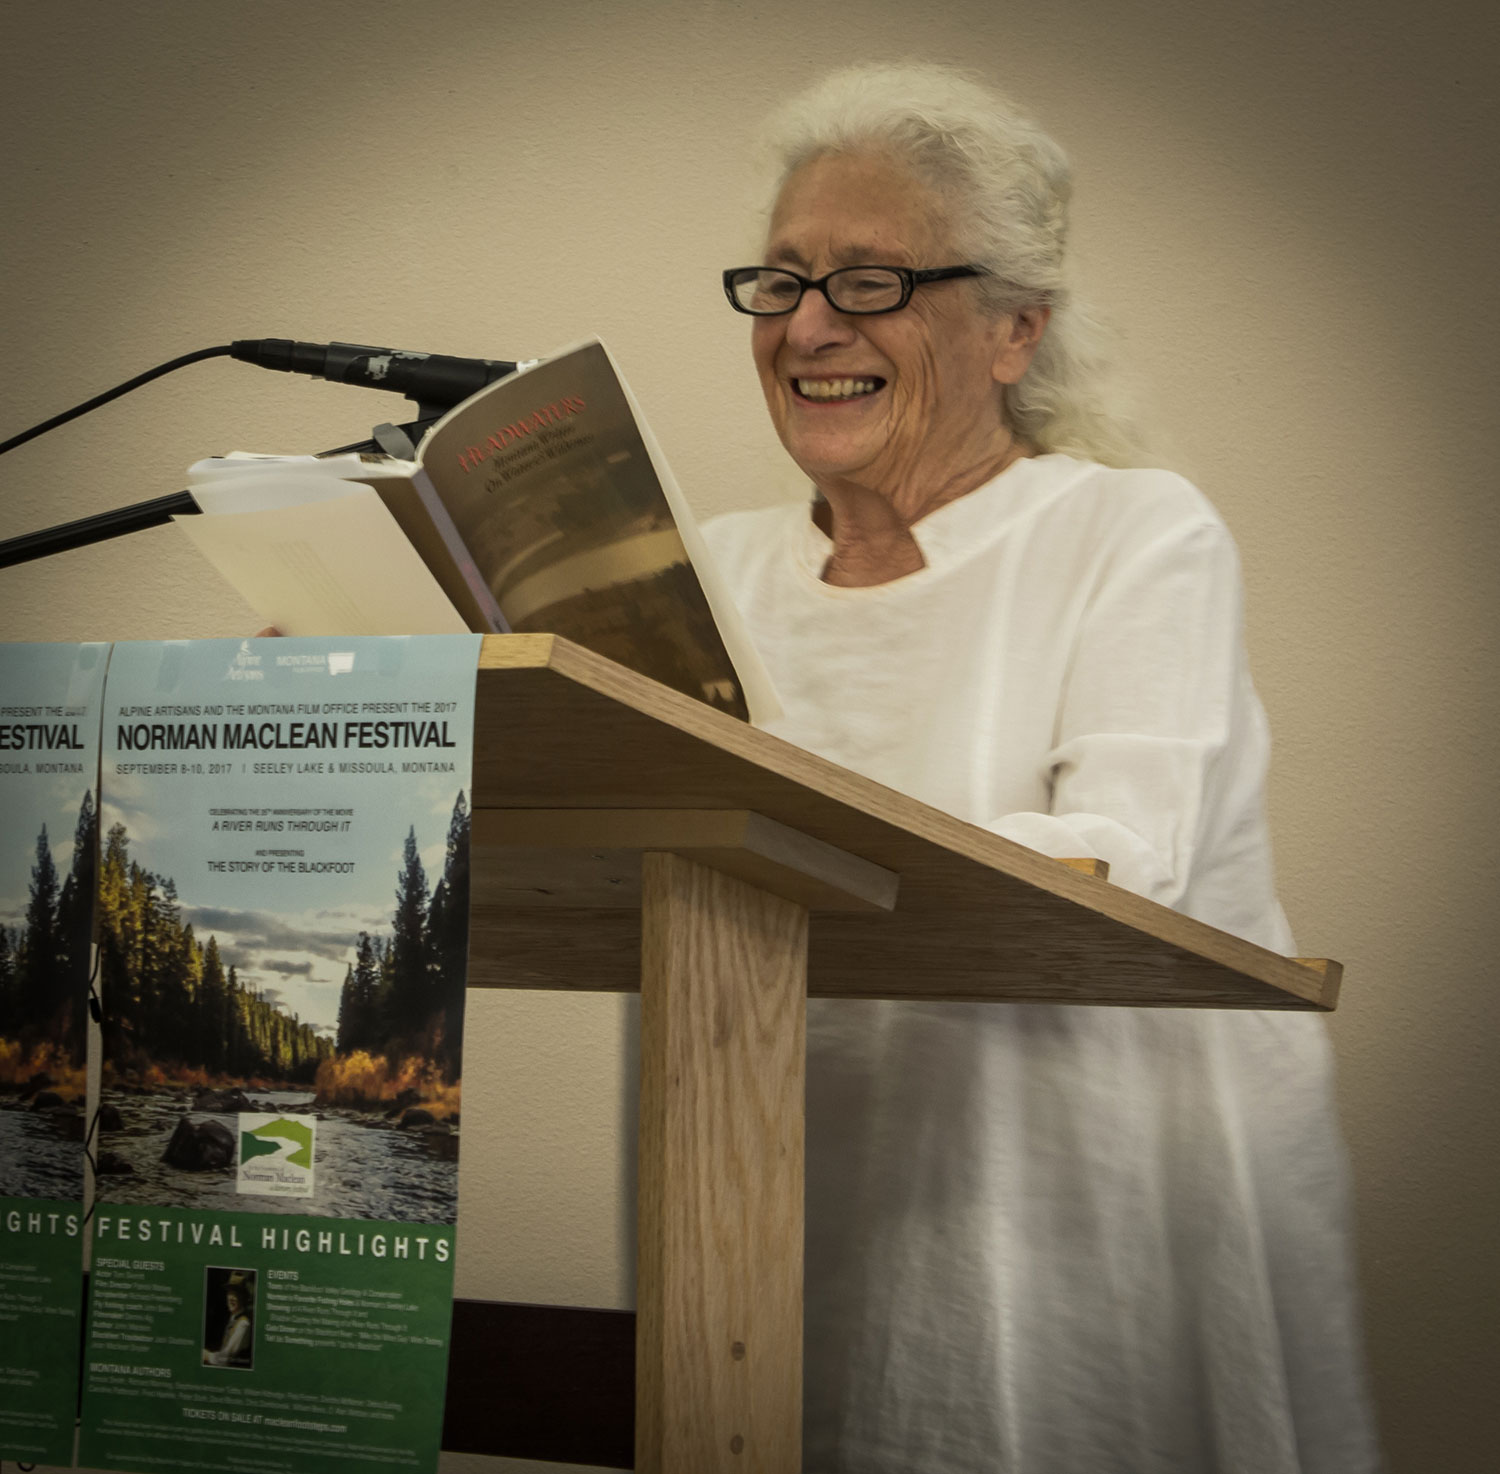 Annick-at-Podium-reading.jpg